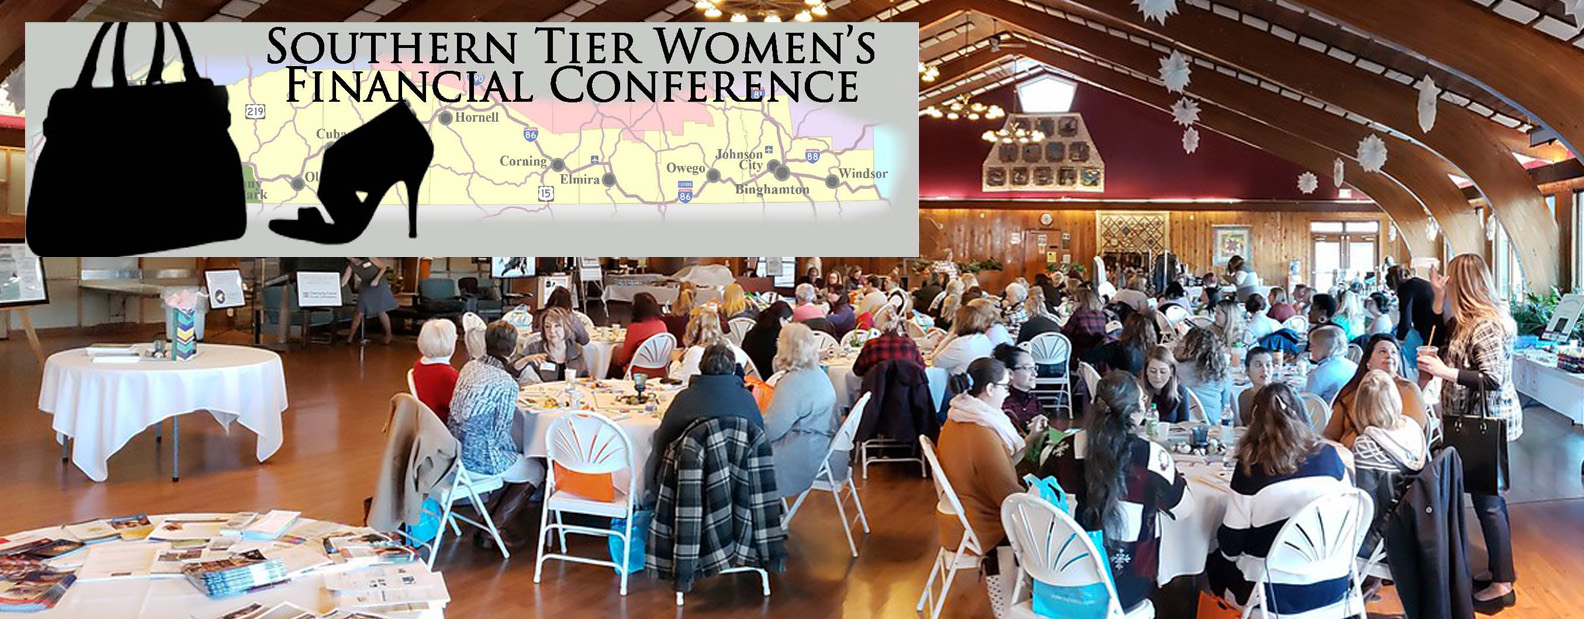 2021 Southern Tier Women's Financial Conference